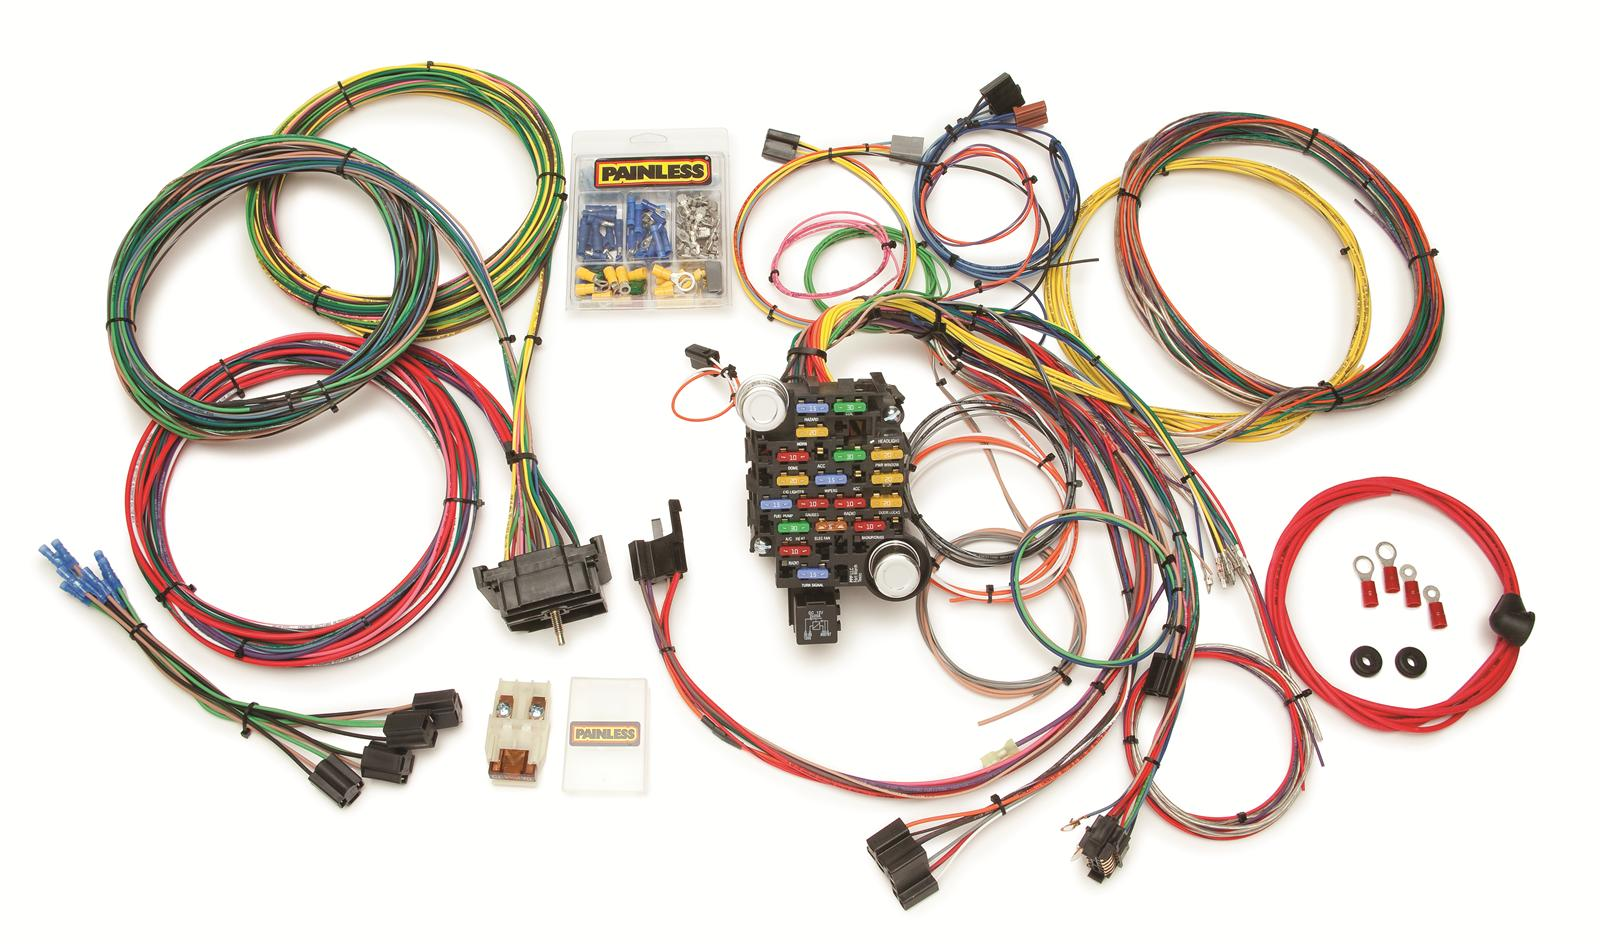 prf 10206_xl painless performance gmc chevy truck harnesses 10206 free painless wiring harness rebate at mifinder.co